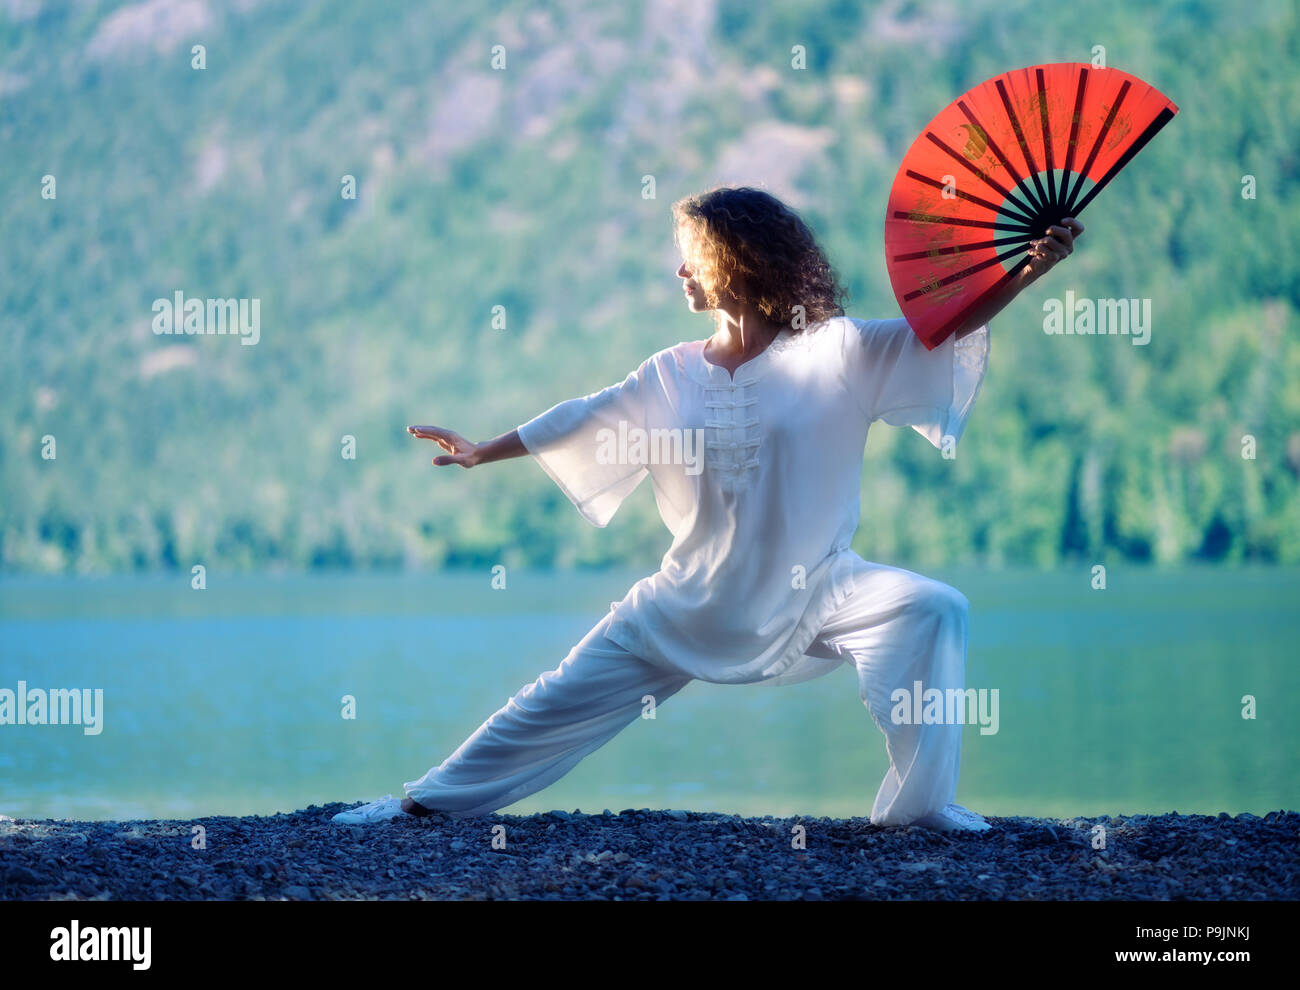 Young woman practicing Tai Chi Chuan with a red fan at mountain lake shore in the nature - Stock Image